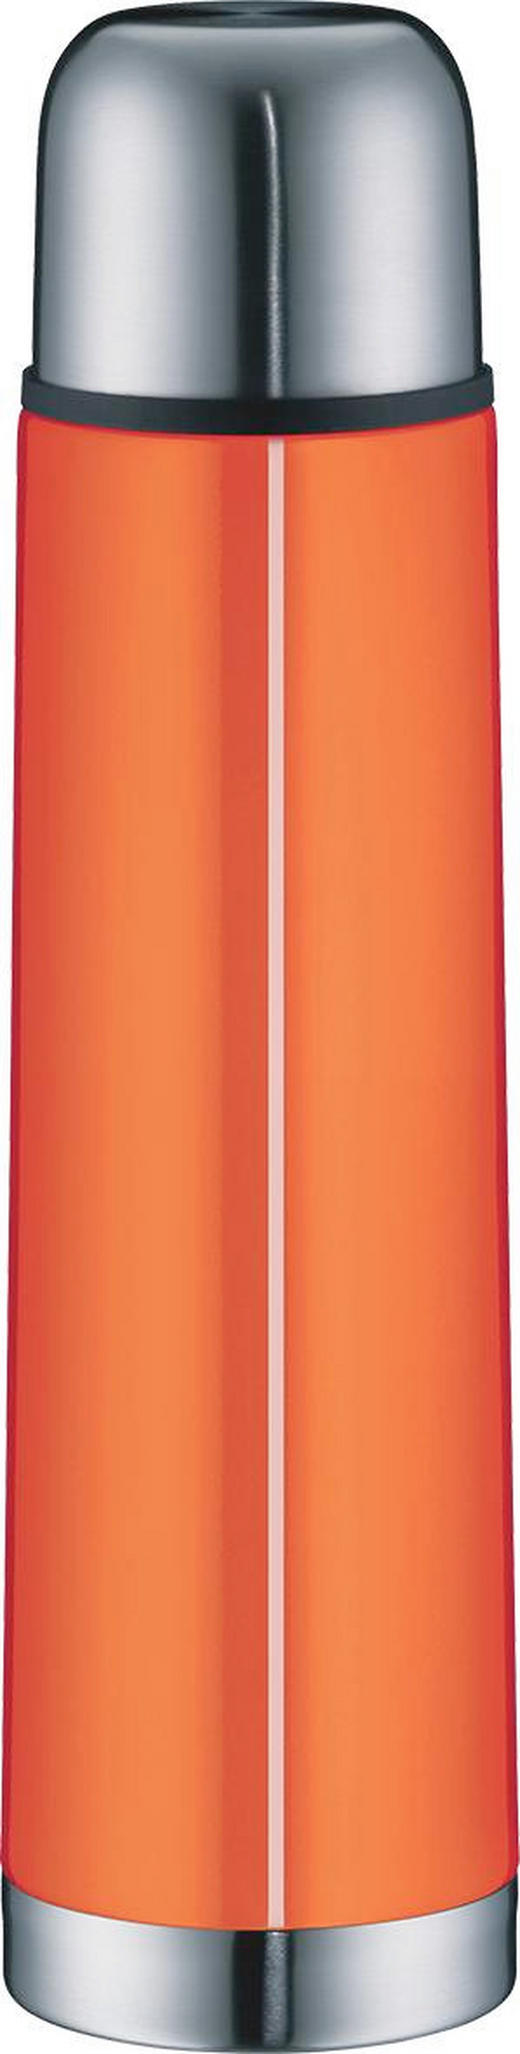 ISOLIERFLASCHE 0,75 L - Orange, Basics, Metall (0,75l) - Alfi